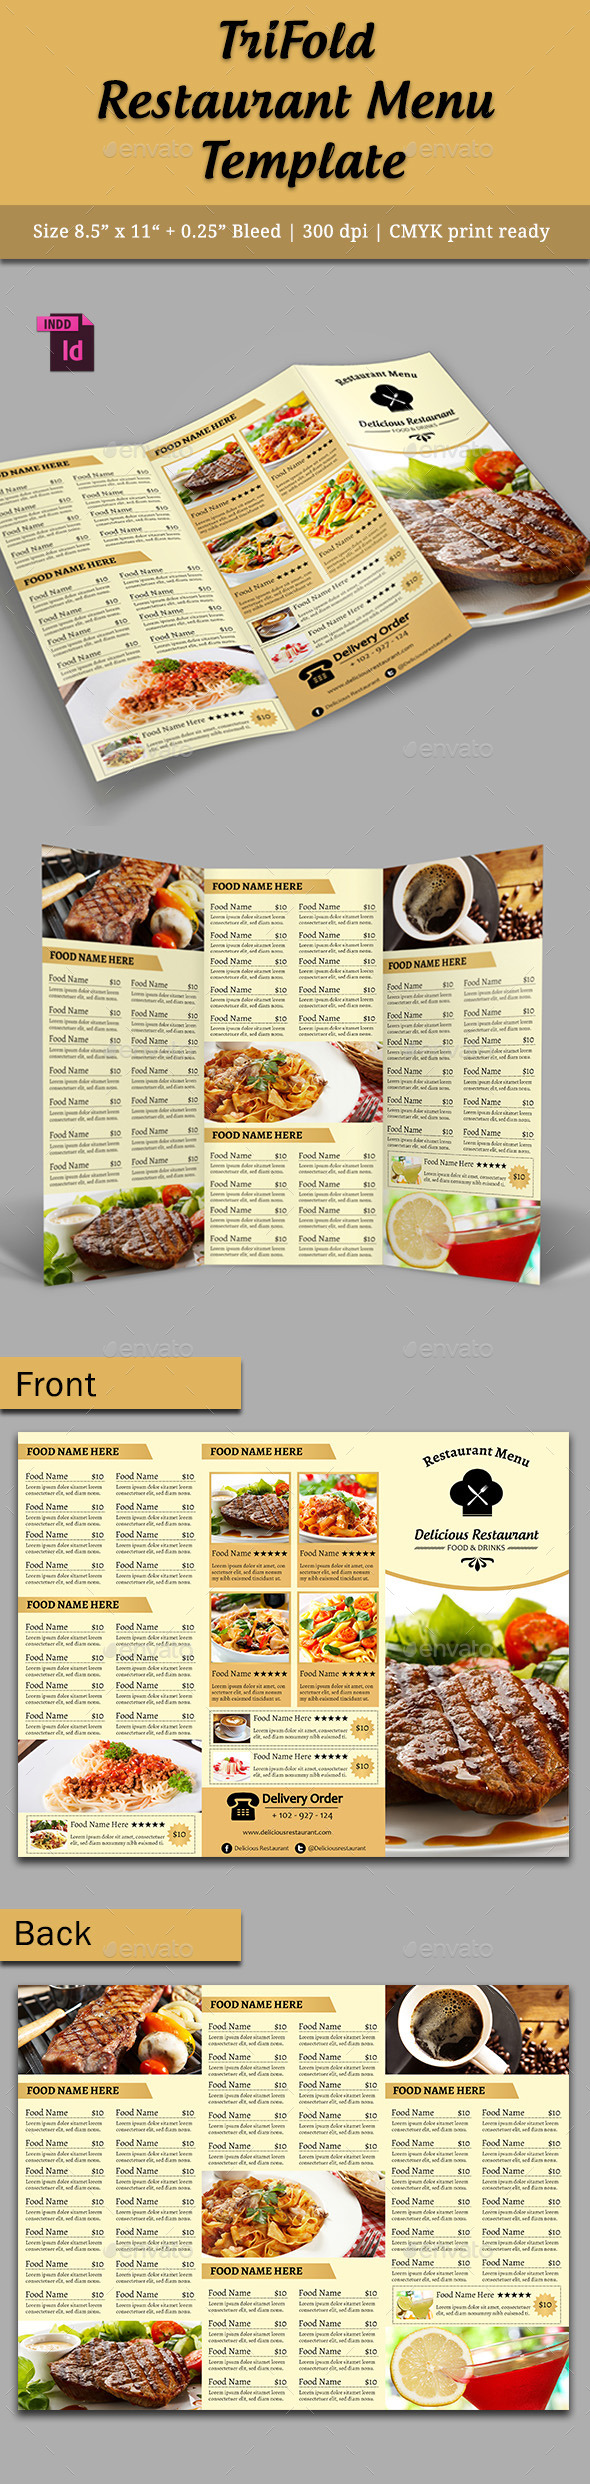 GraphicRiver TriFold Restaurant Menu Template Vol 5 10064385